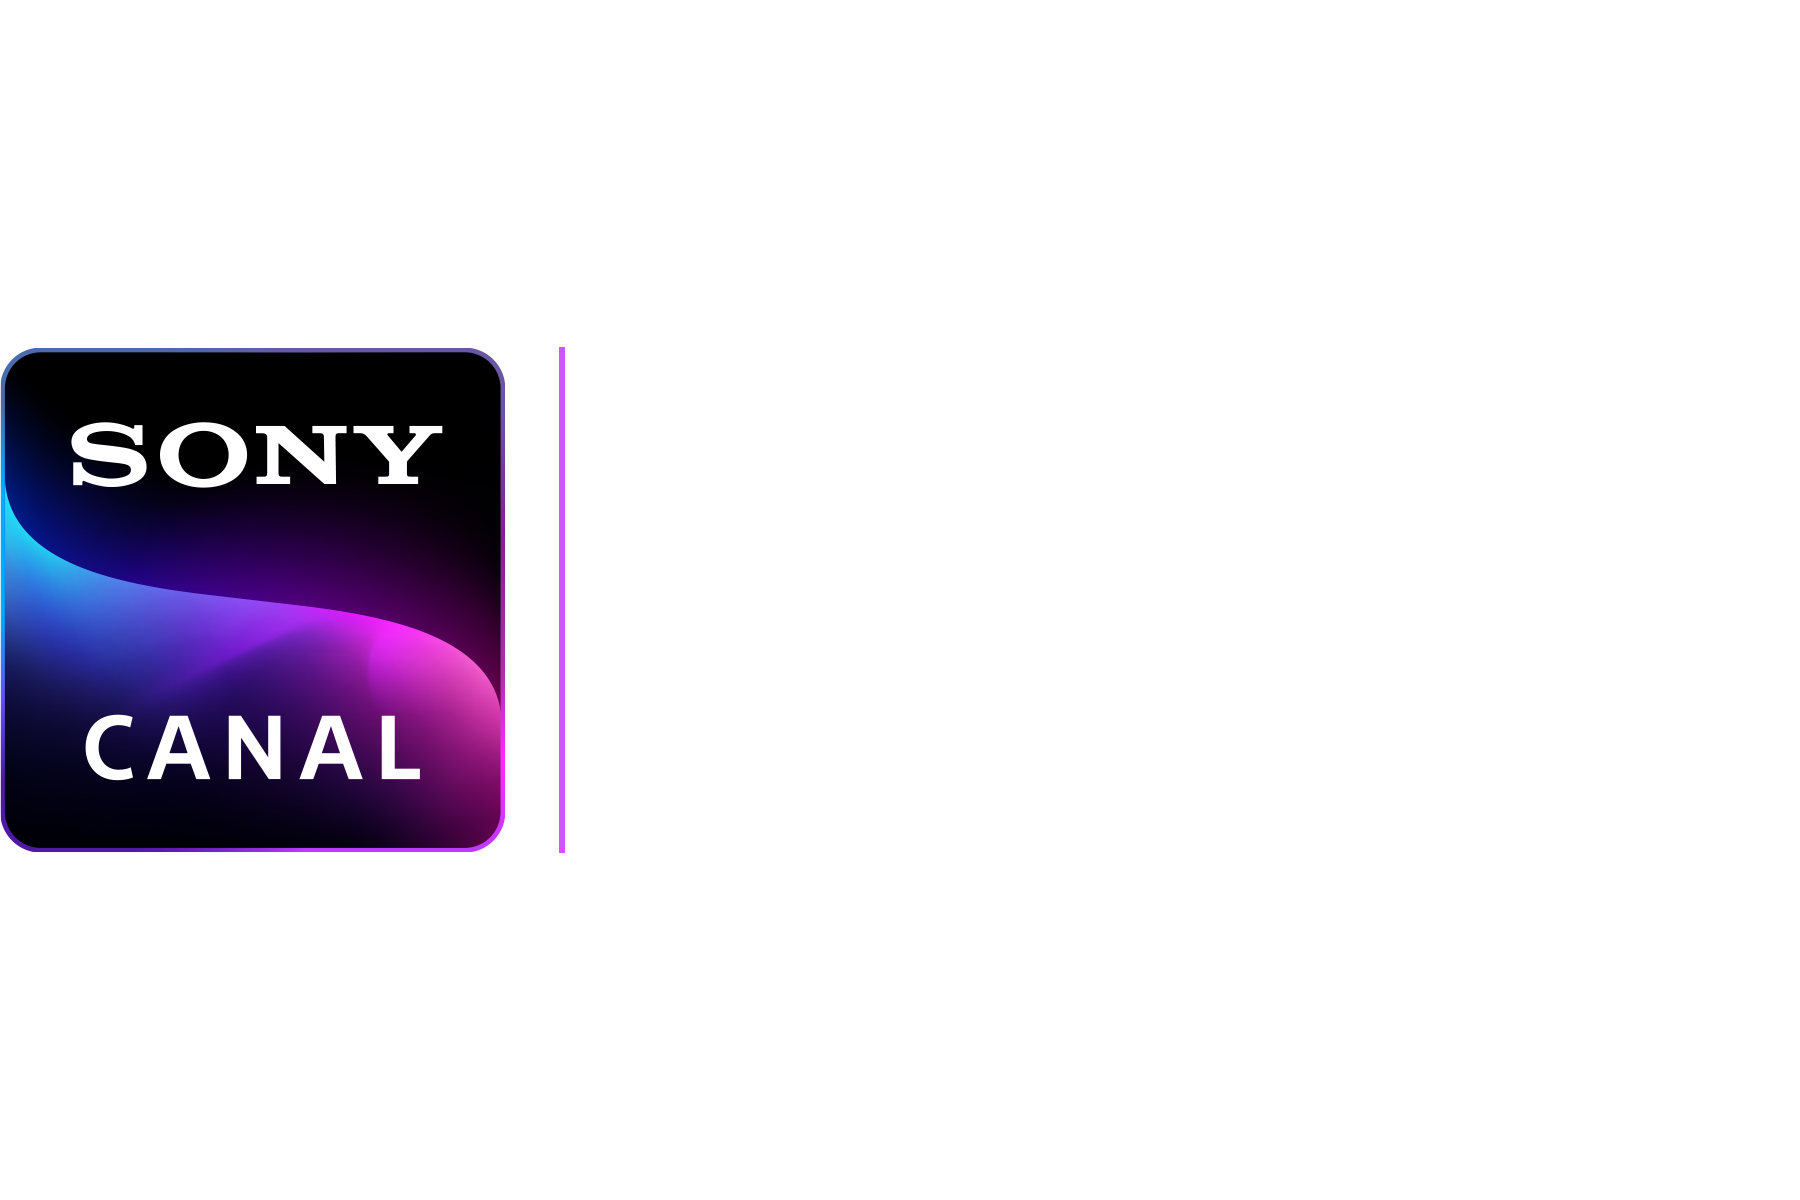 Sony Canal Competencias